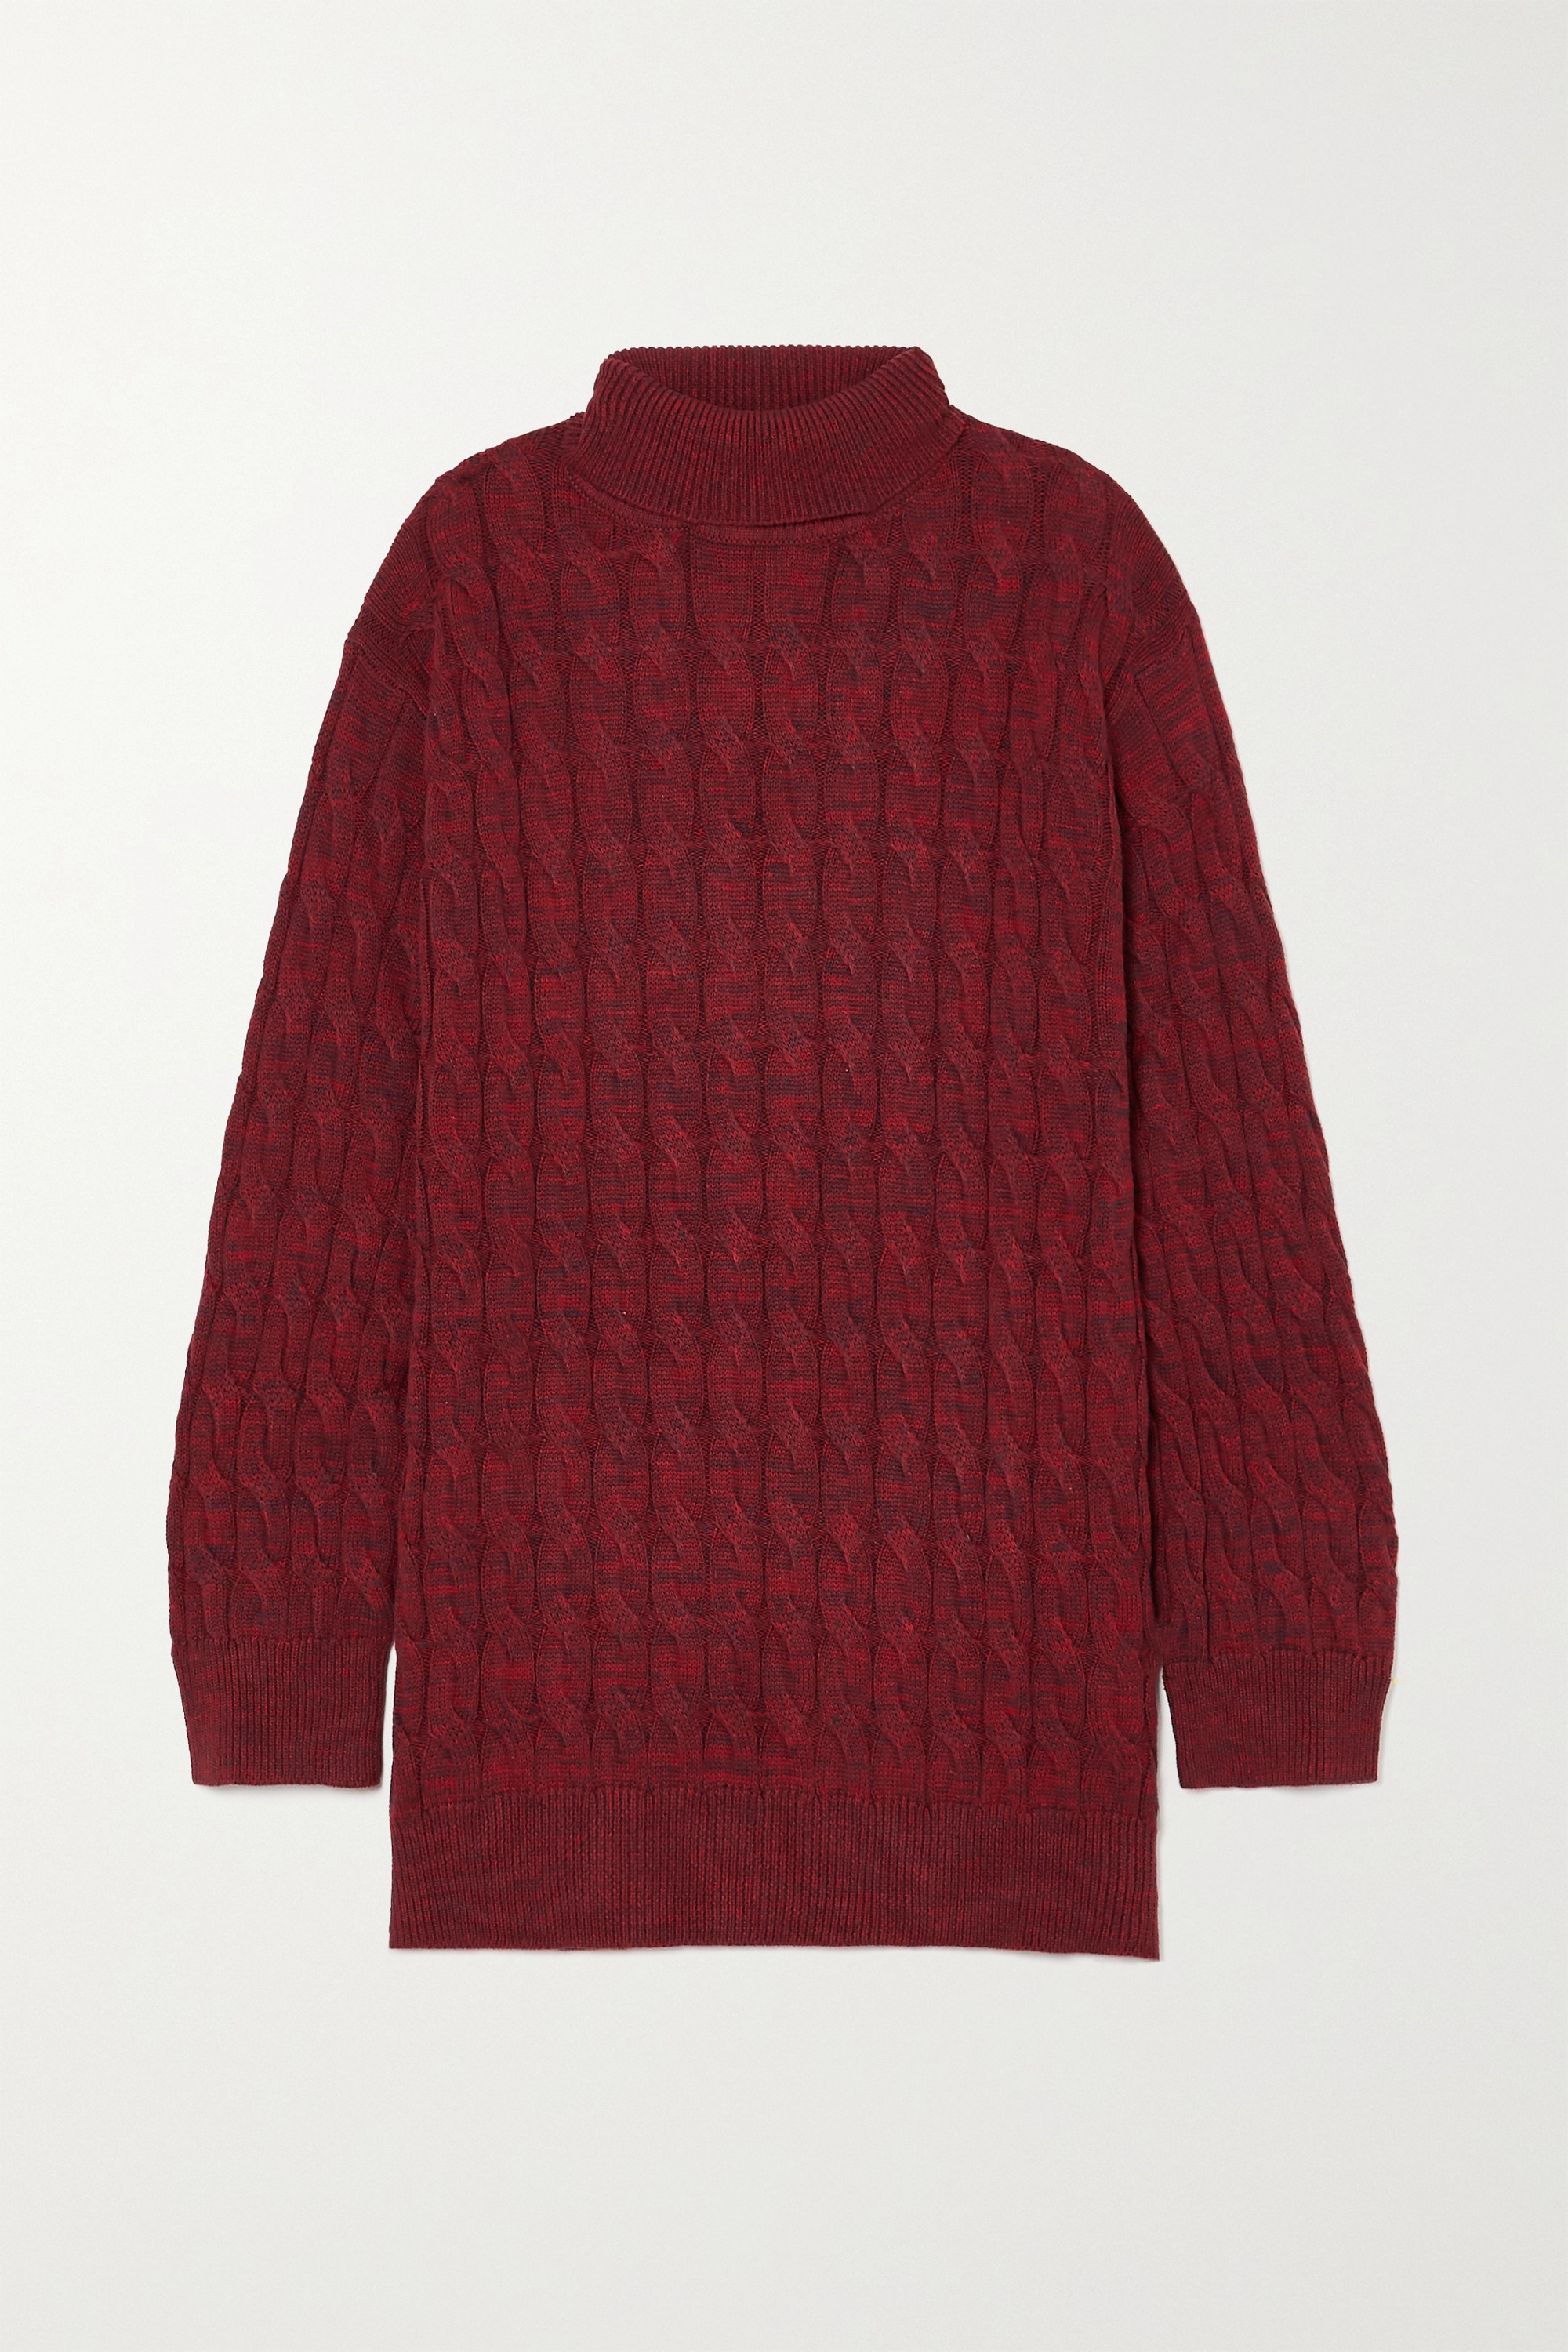 ANNA QUAN Dante cable-knit cotton sweater